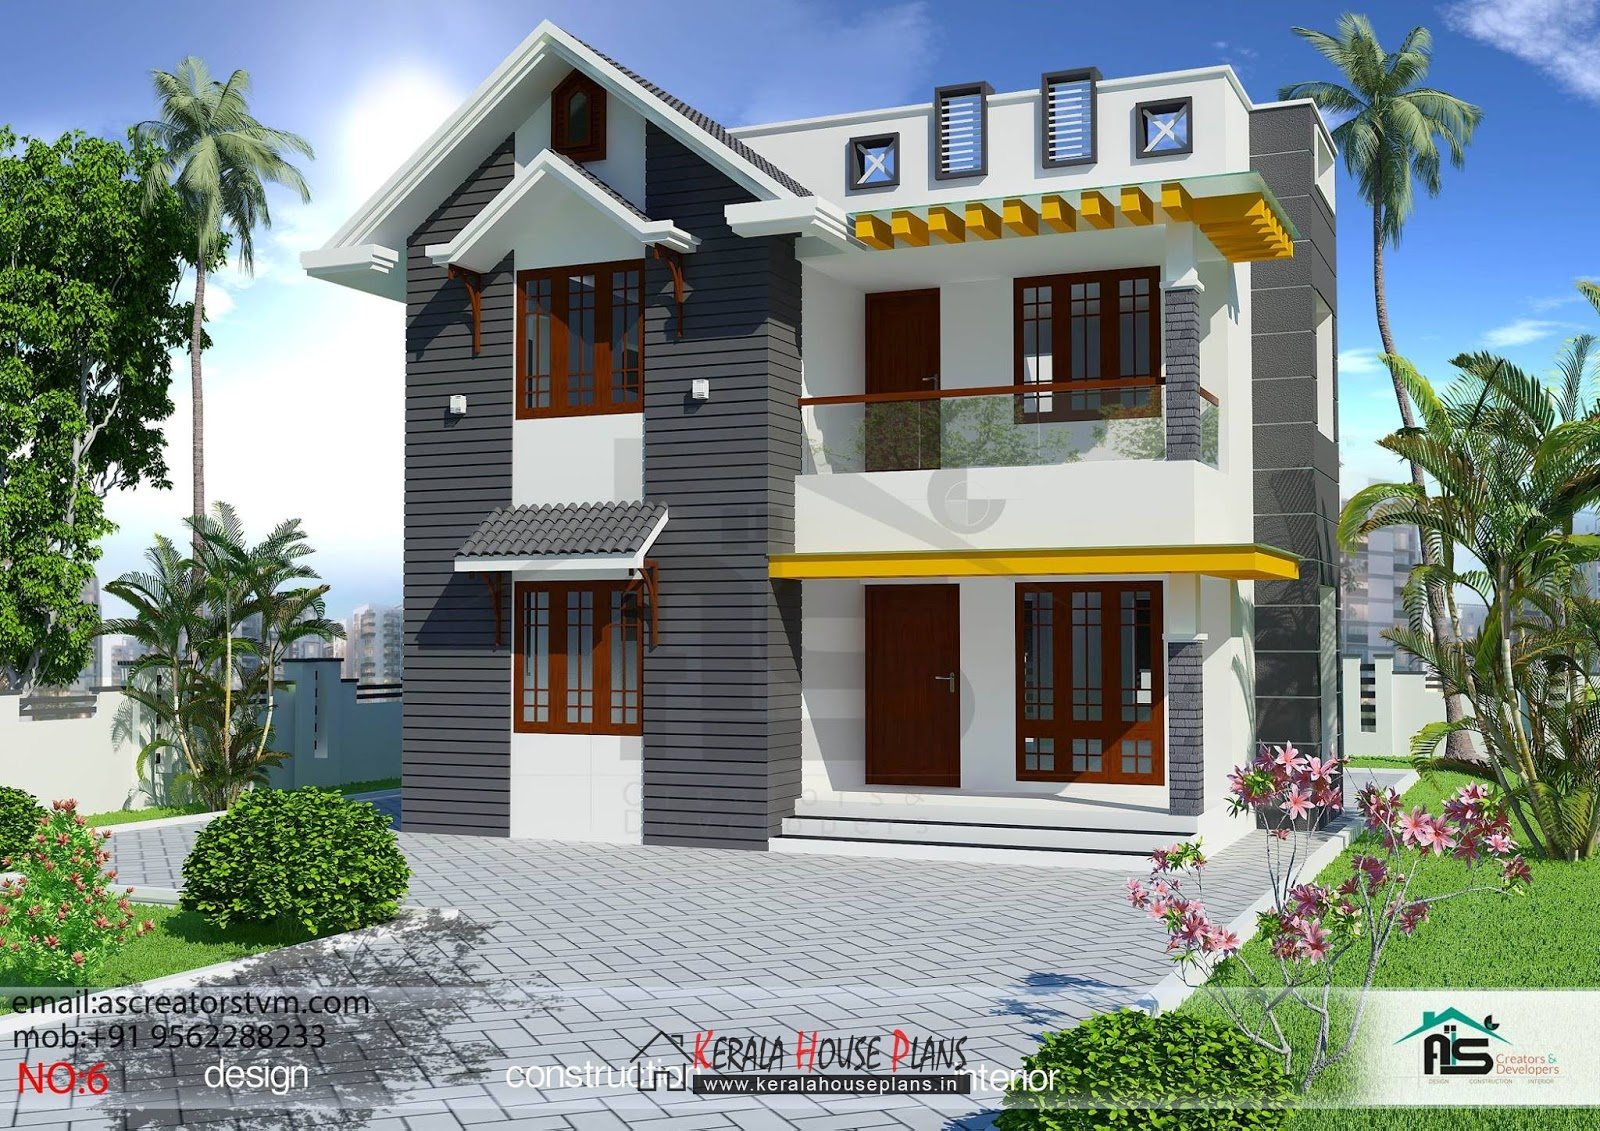 3 bedroom house plans in kerala double floor kerala for Kerala house plan 3 bedroom